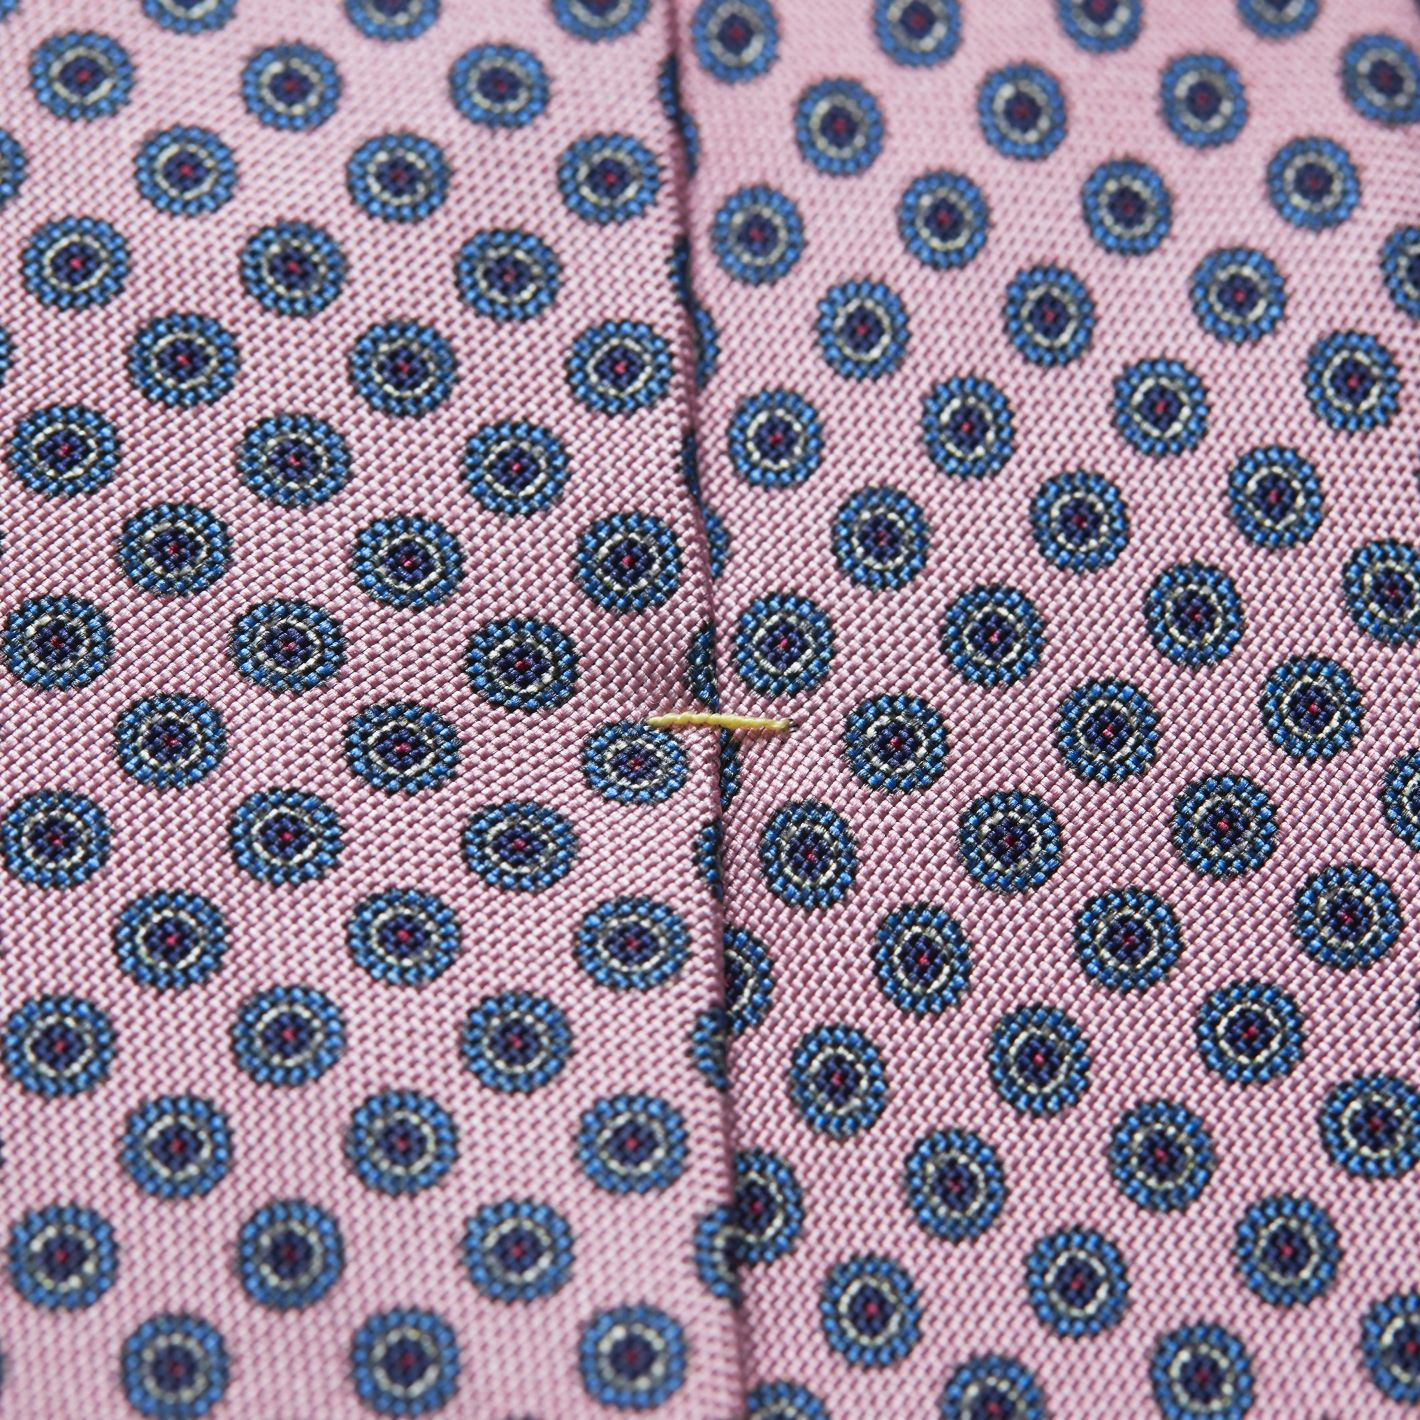 100% silk premium quality made in Italy men's geometric print tie in pink